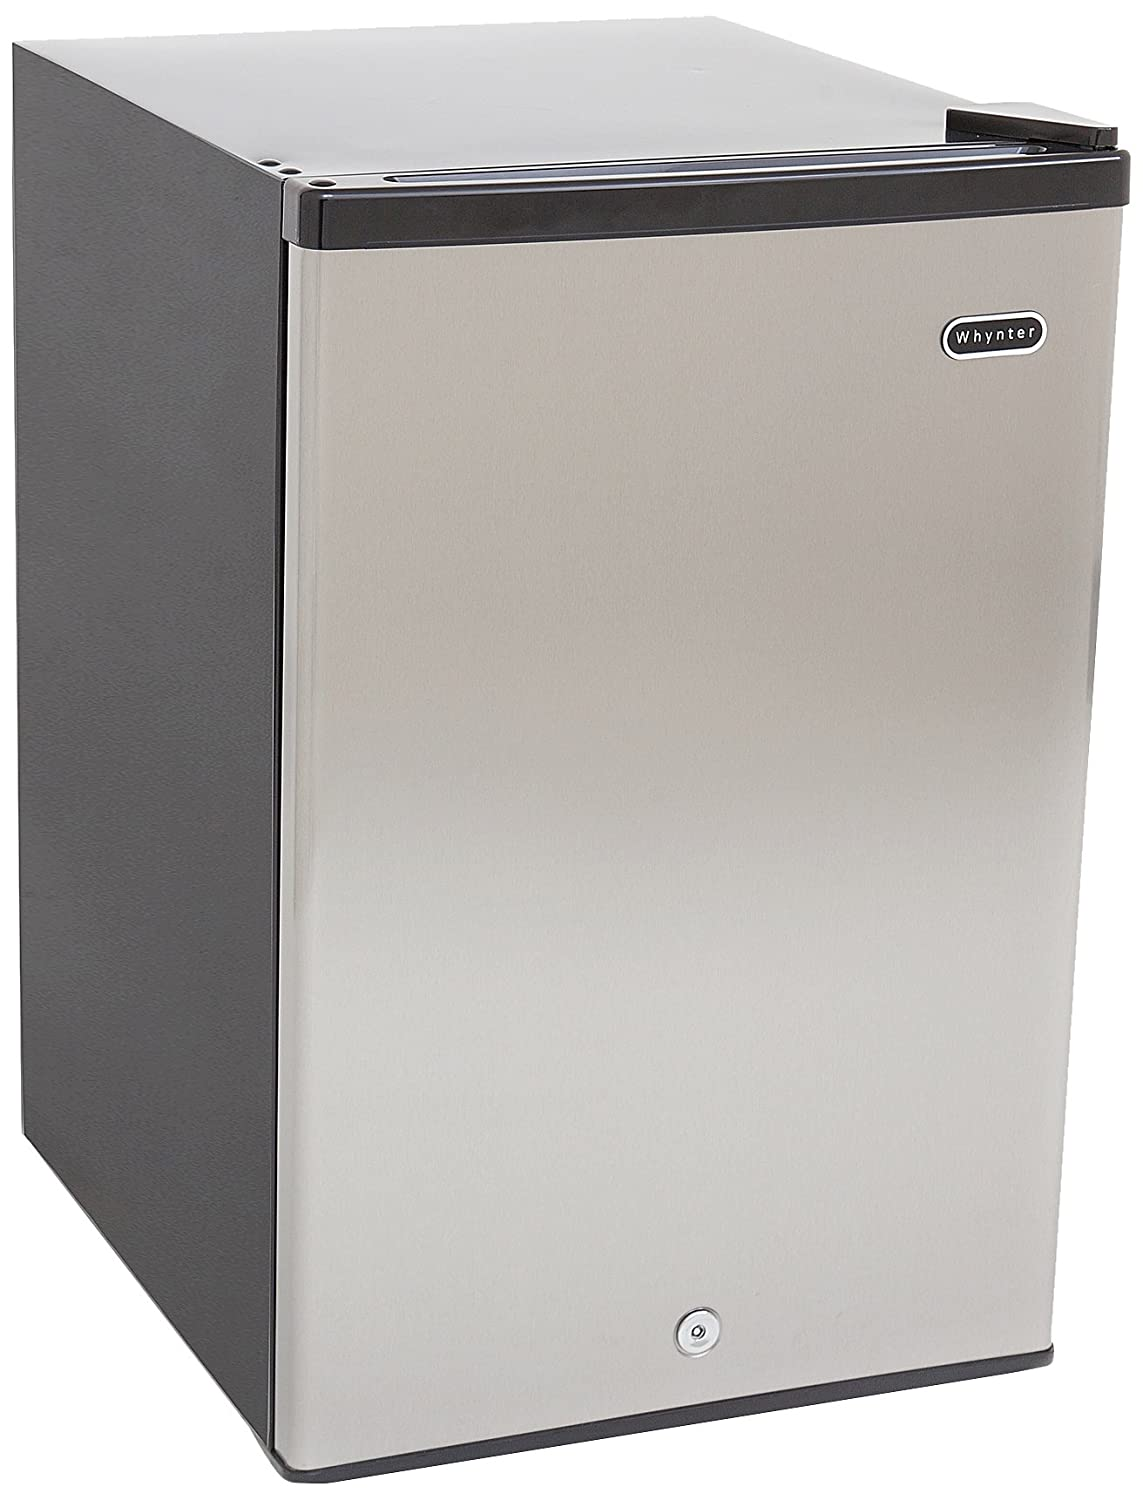 amazoncom whynter cuf210ss energy star upright freezer 21 cubic feet appliances - Chest Freezers On Sale